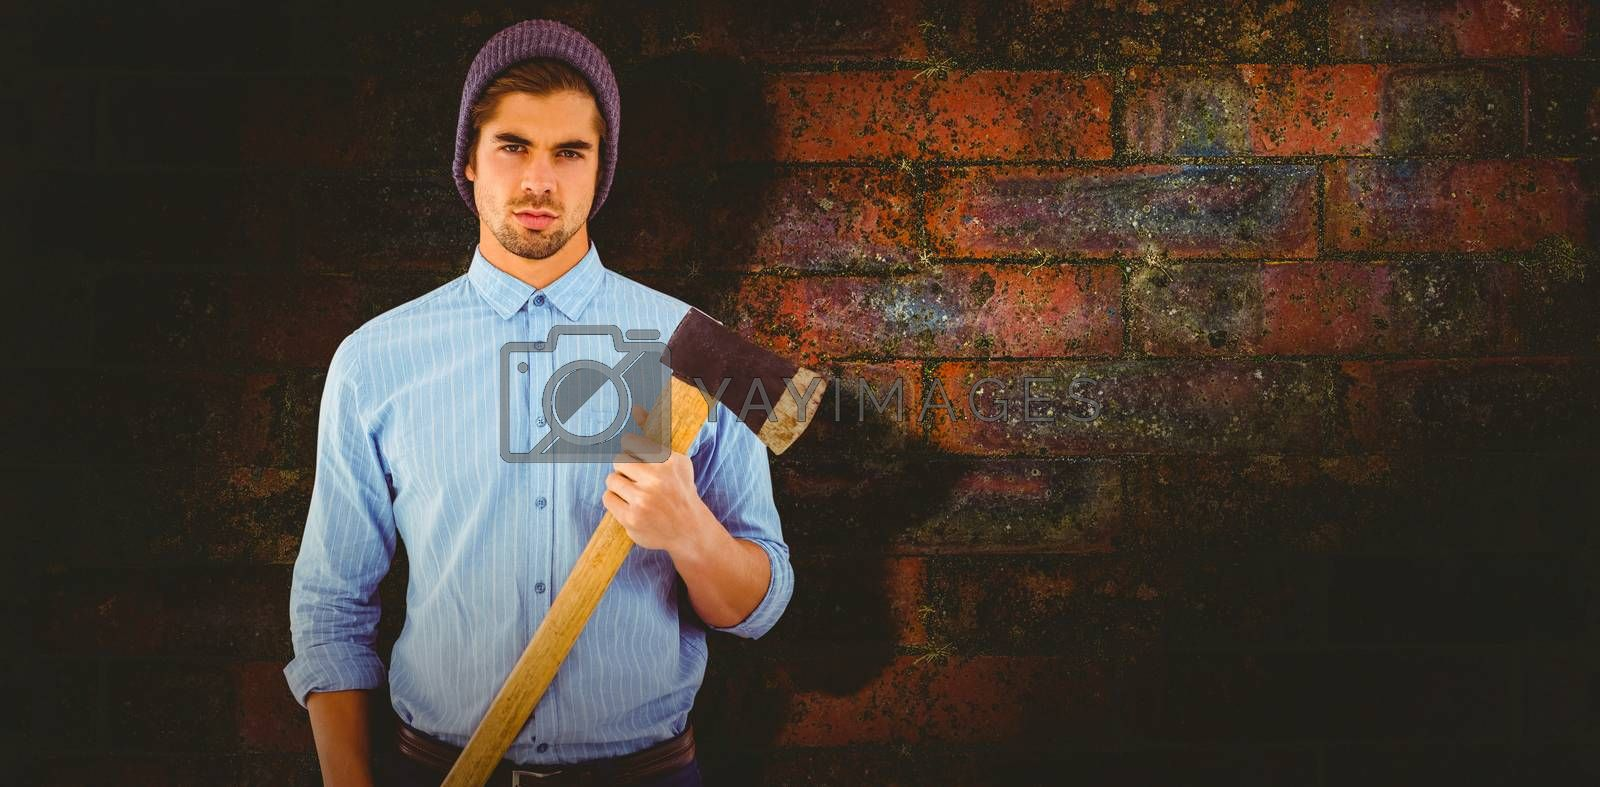 Portrait of serious hipster holding axe against texture of bricks wall